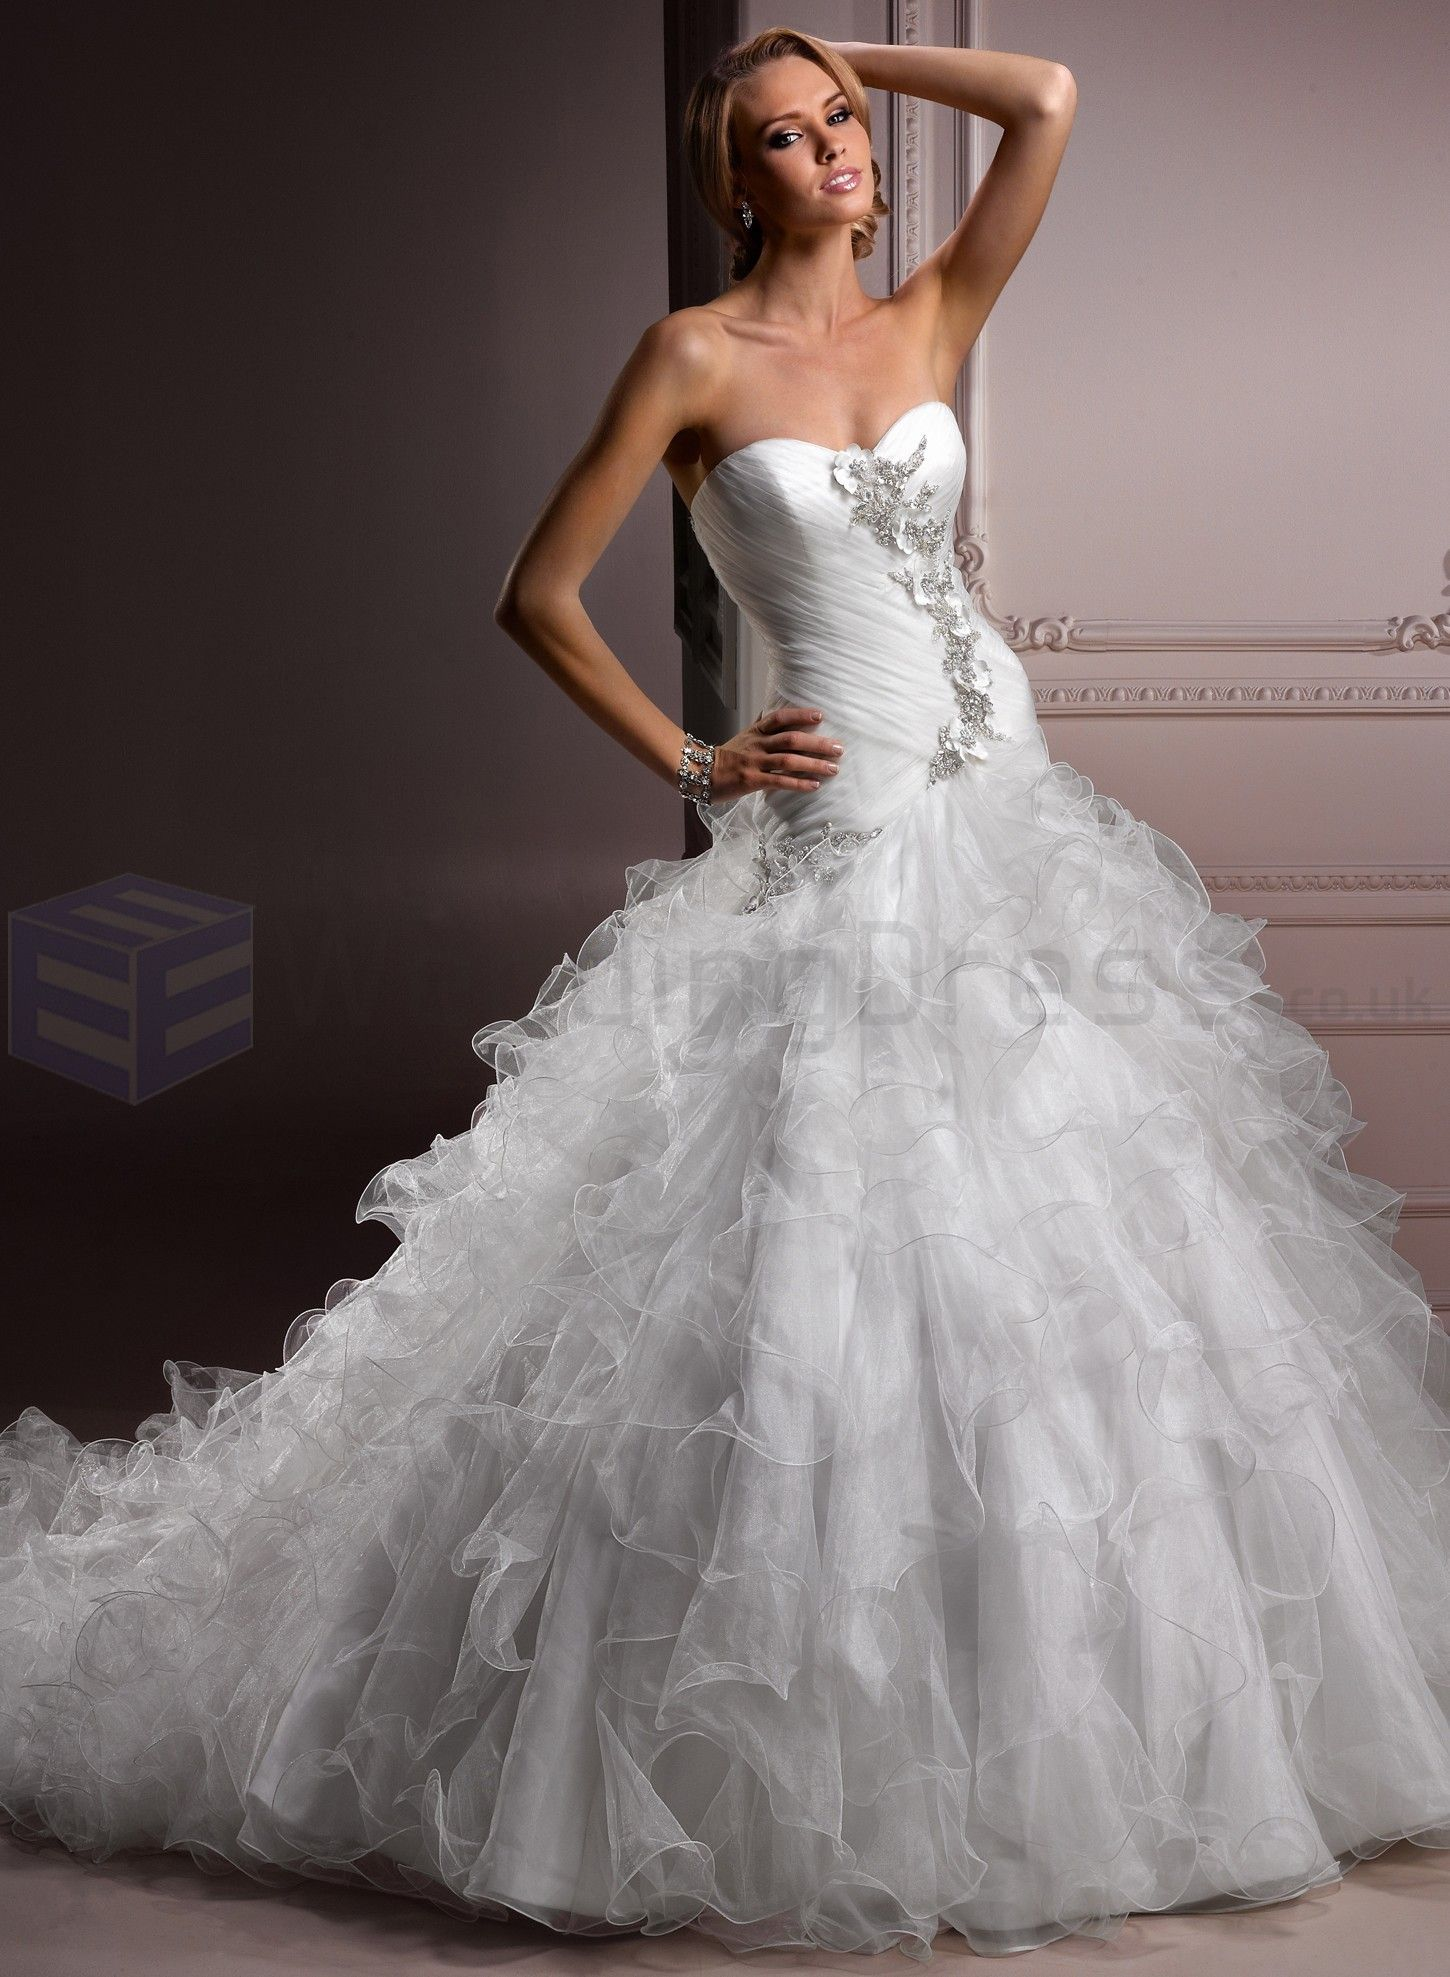 Tulle sweetheart neckline ball gown wedding dress beauty brides